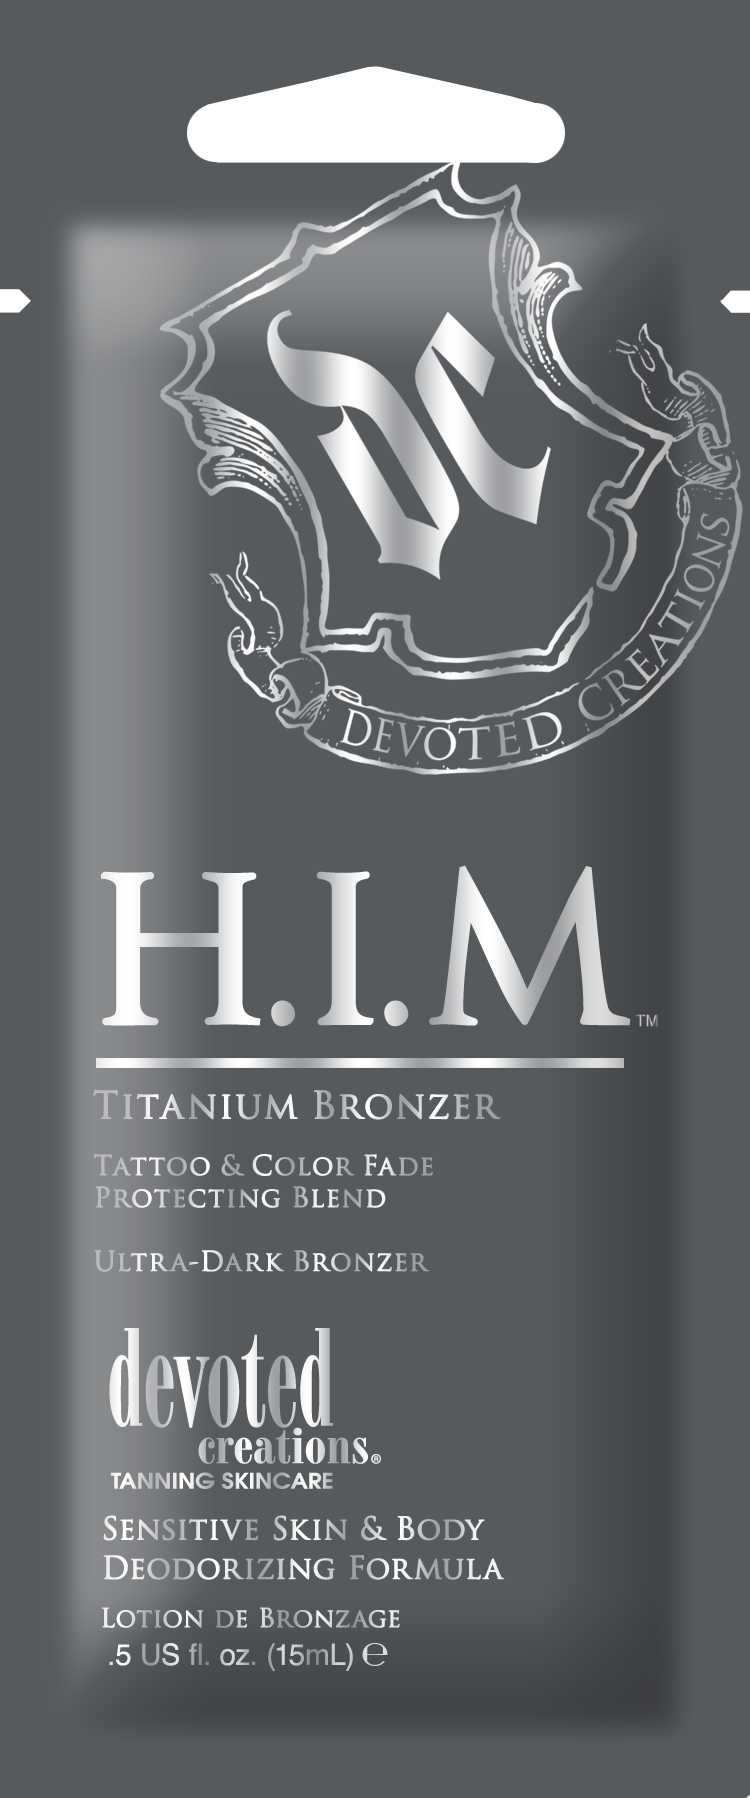 HIM Titanium Bronzer™ Sample